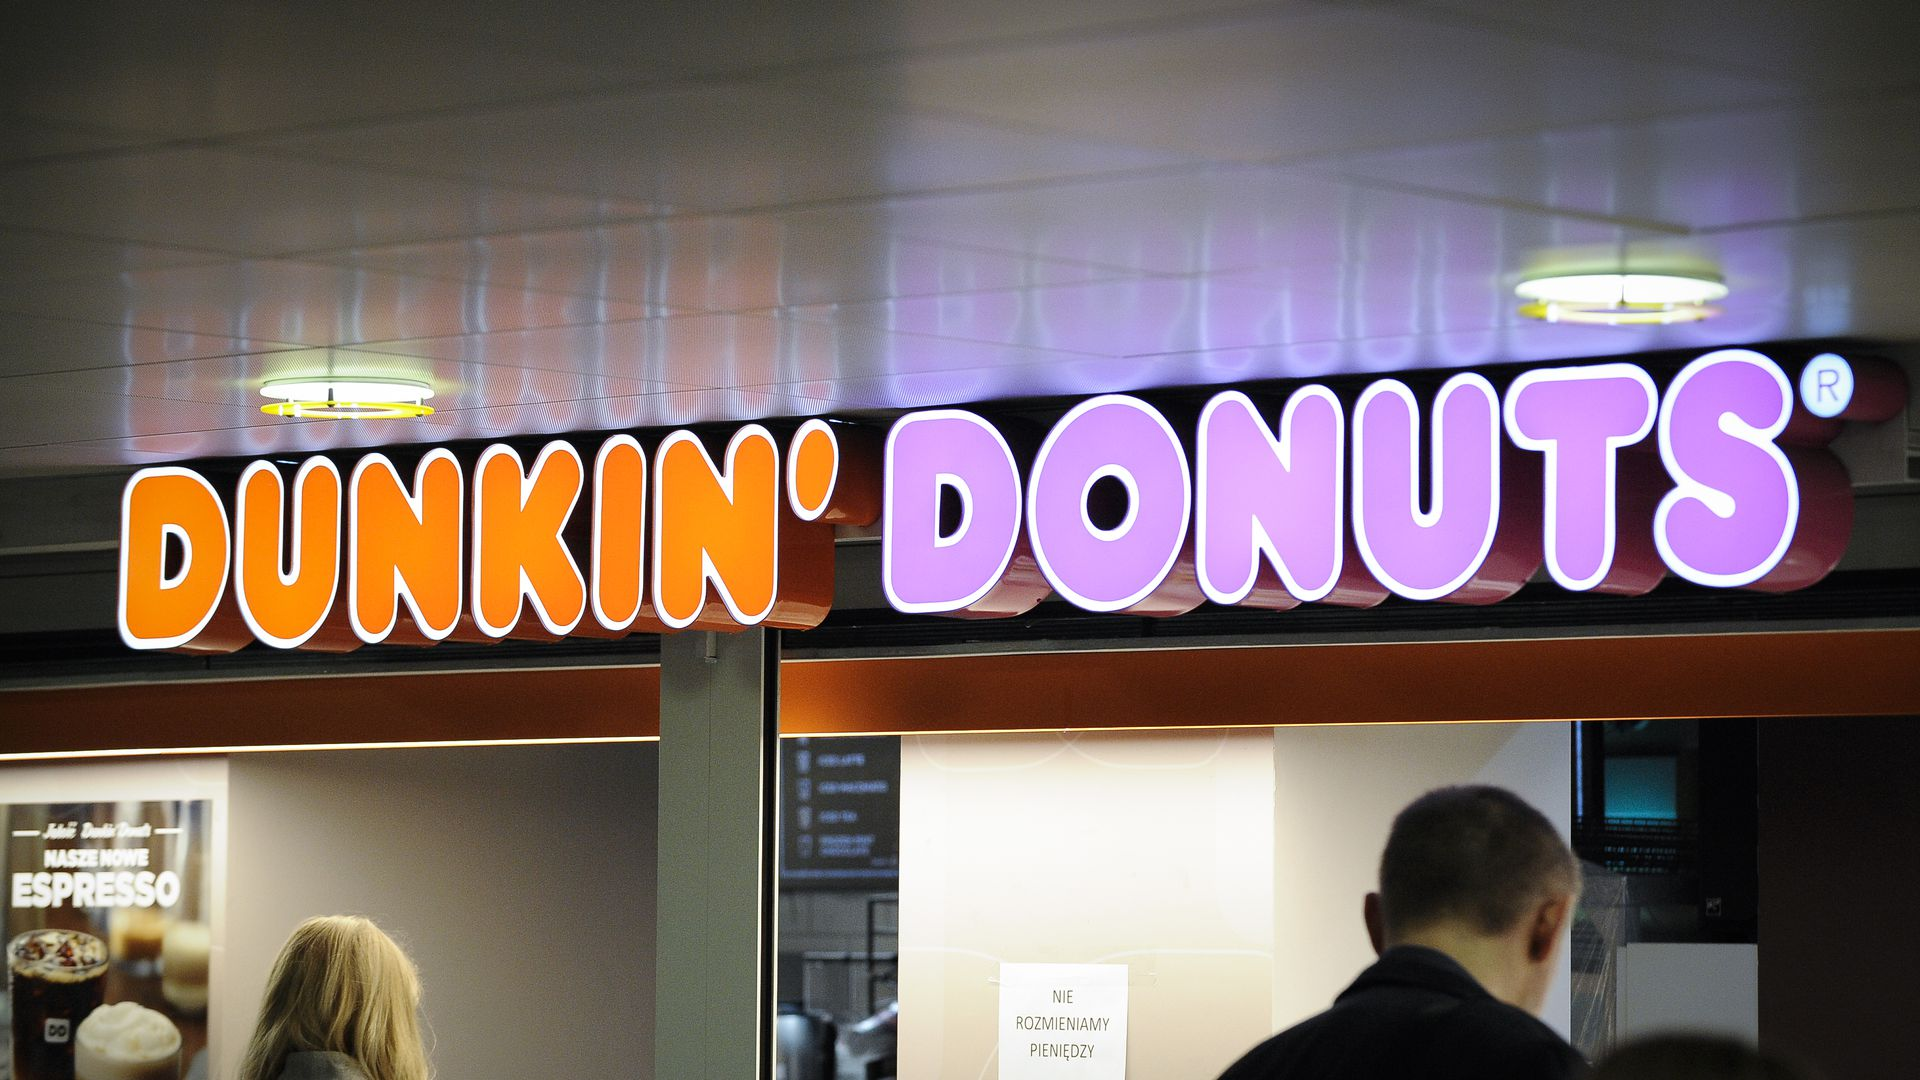 Dunkin' Donuts neon sign.